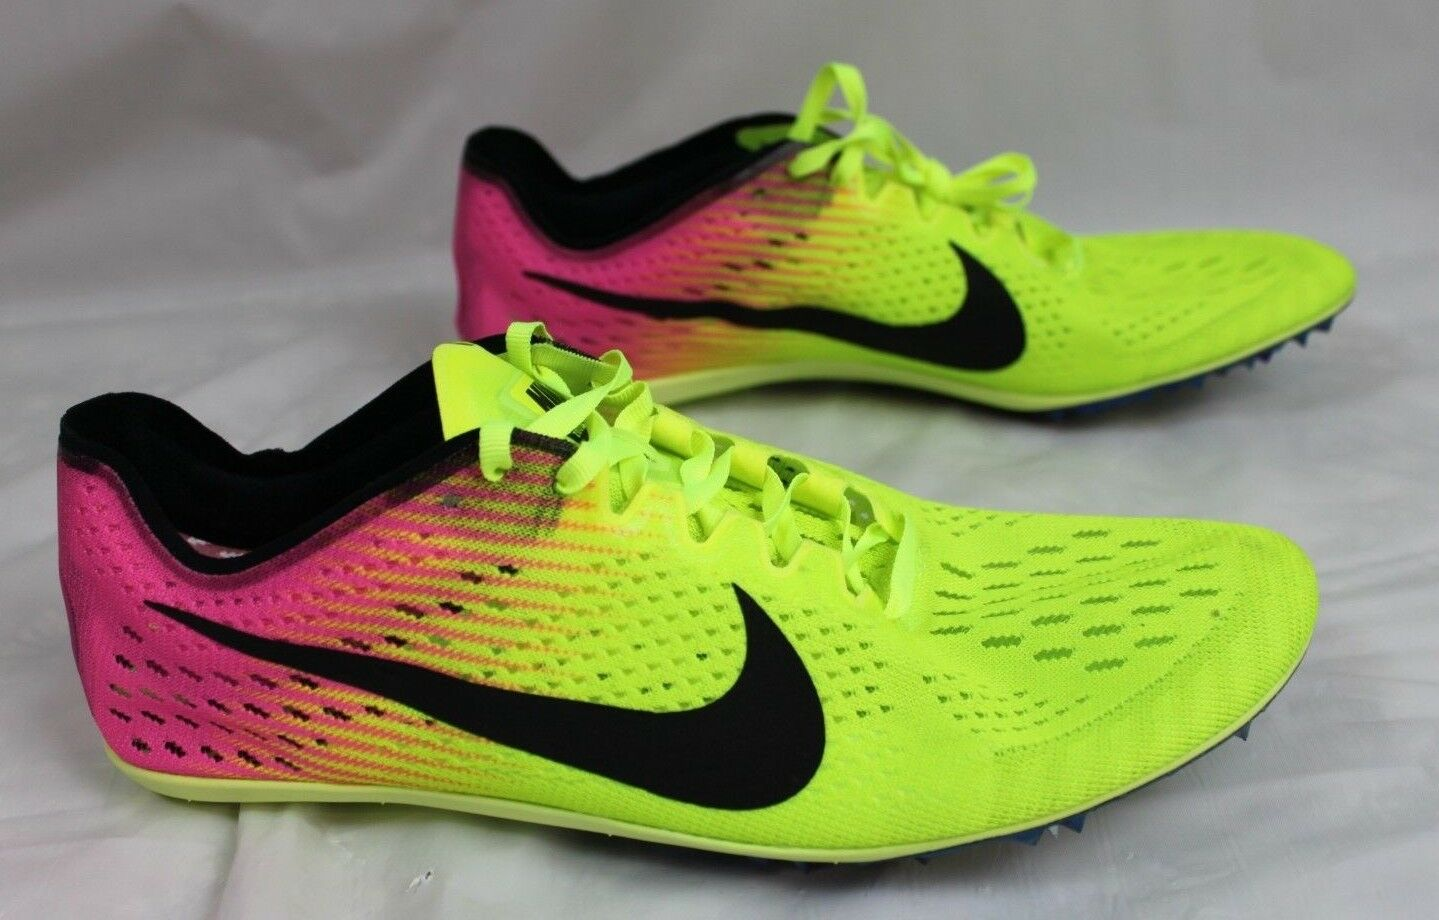 low priced a6104 0fc51 Nike Zoom Victory ELITE 2 Distance Track XCChaussuresYellow  rouge10.5, 13  Iridesent